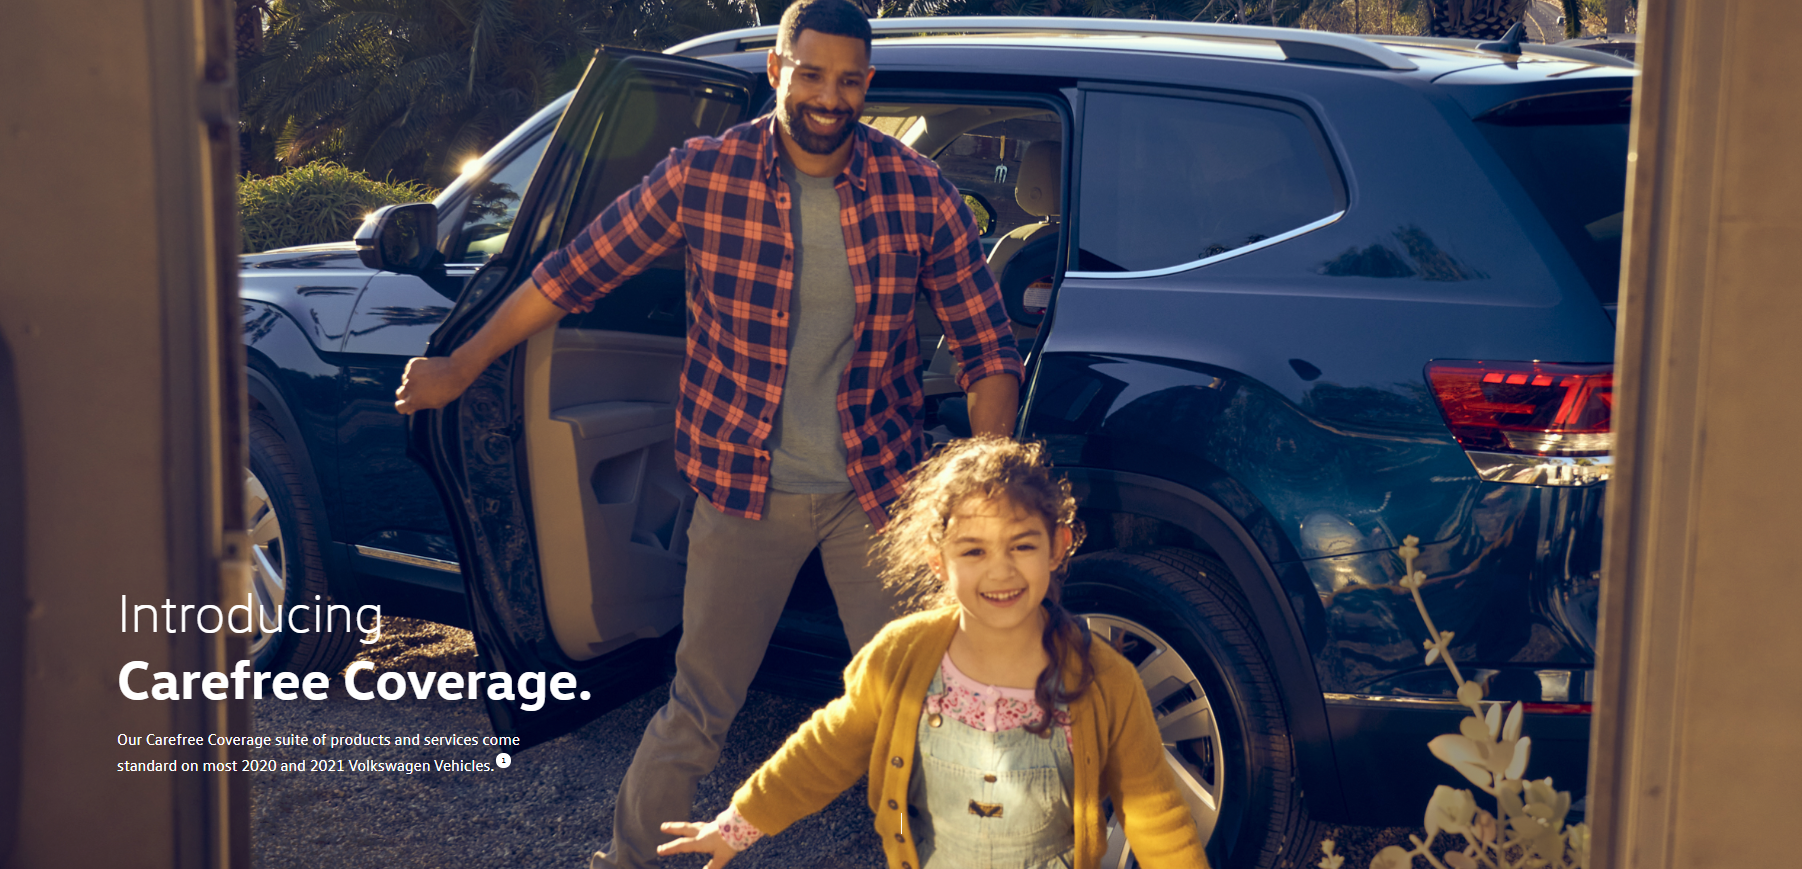 Introducing Carefree Coverage. Our Carefree Coverage suite of products and services come standard on most 2020 and 2021 Volkswagen Vehicles.